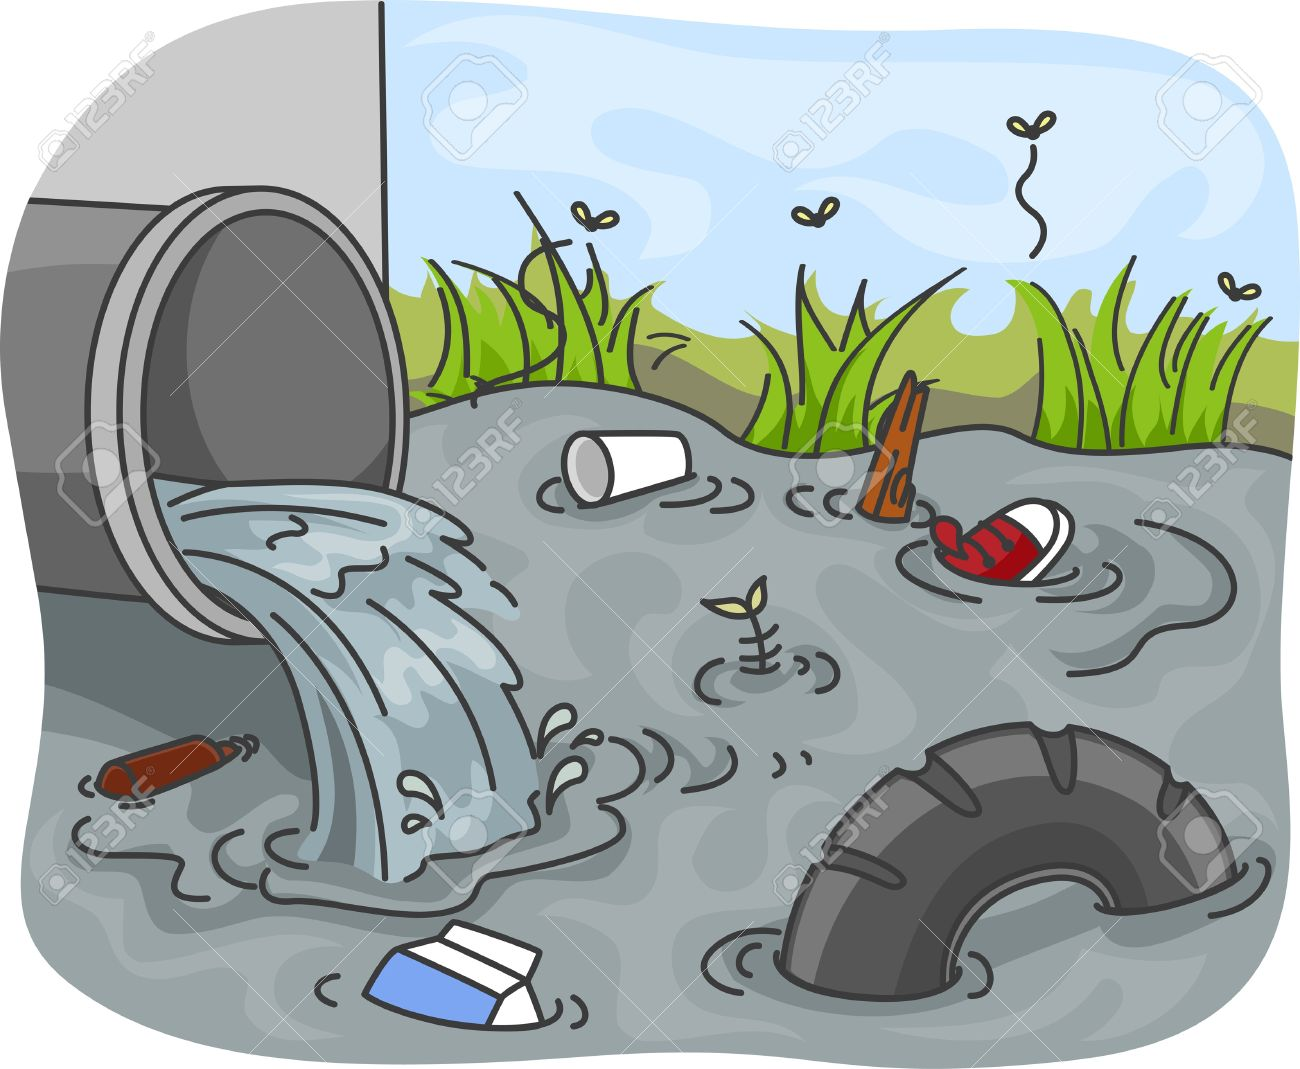 Pollution clipart river pollution #3